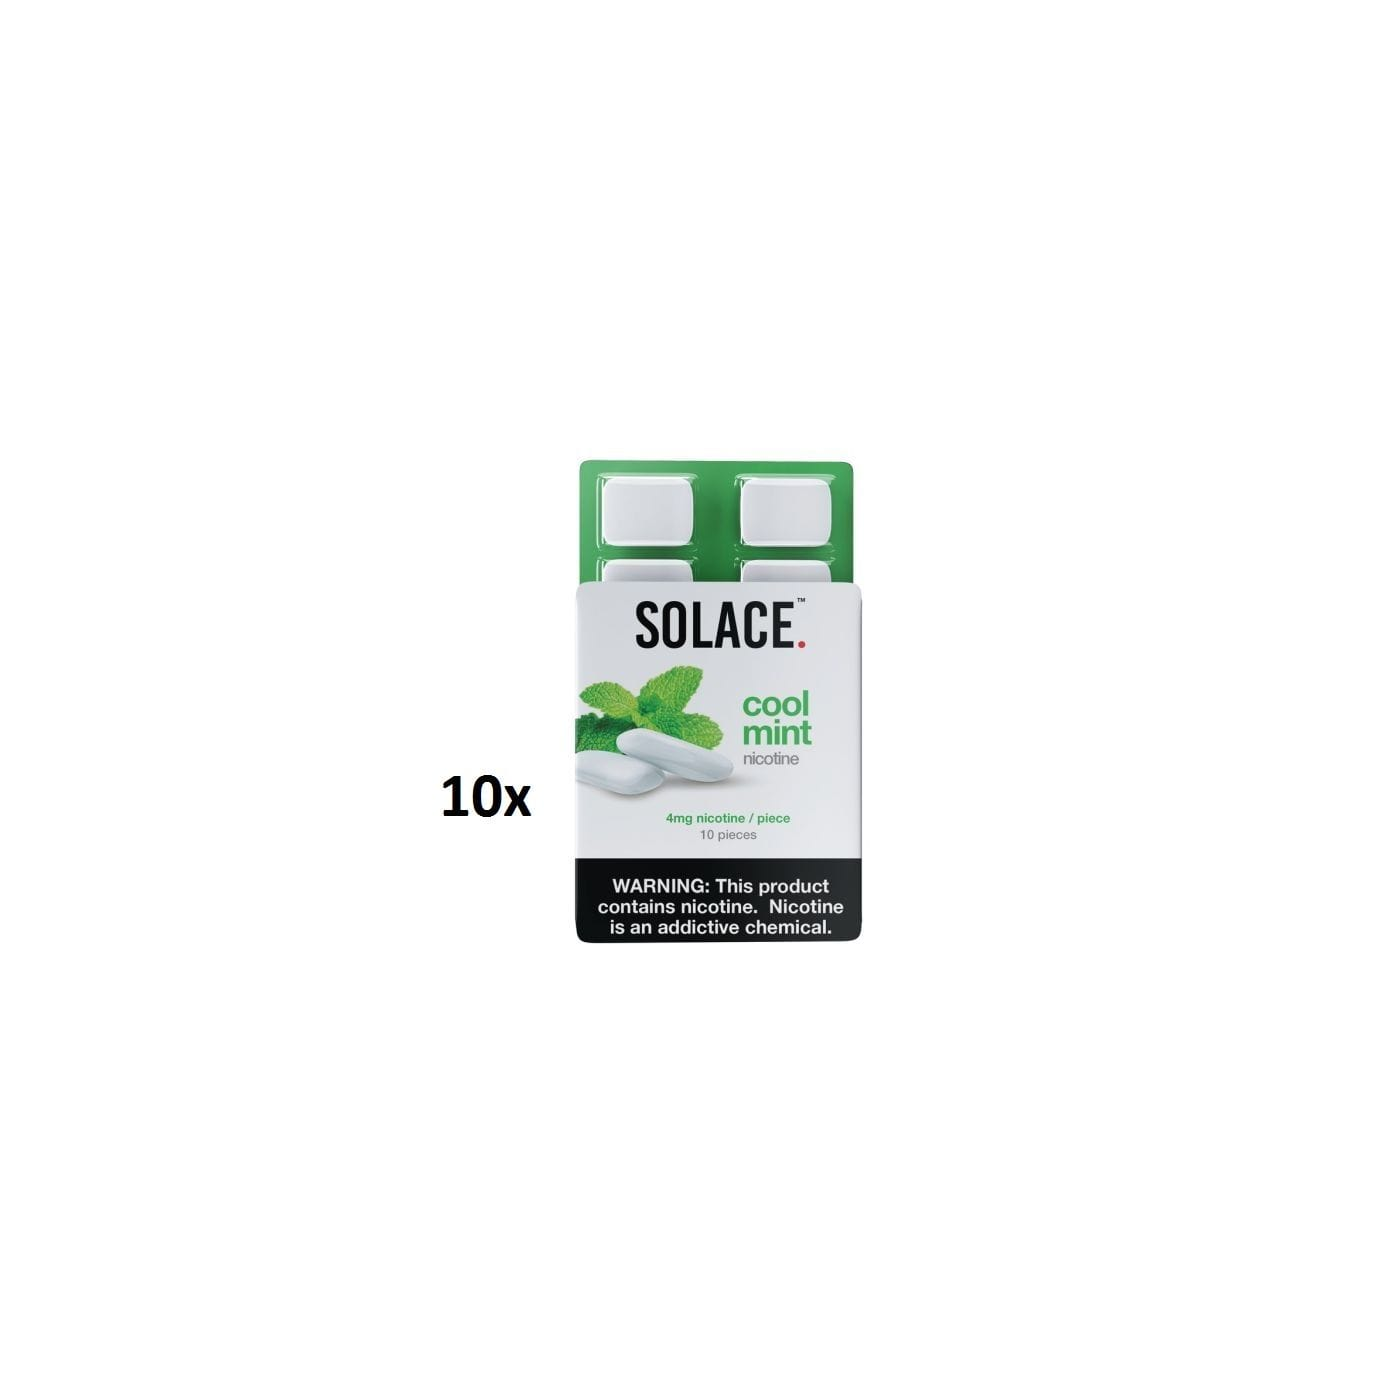 Solace Chew Mint - 10 Pack